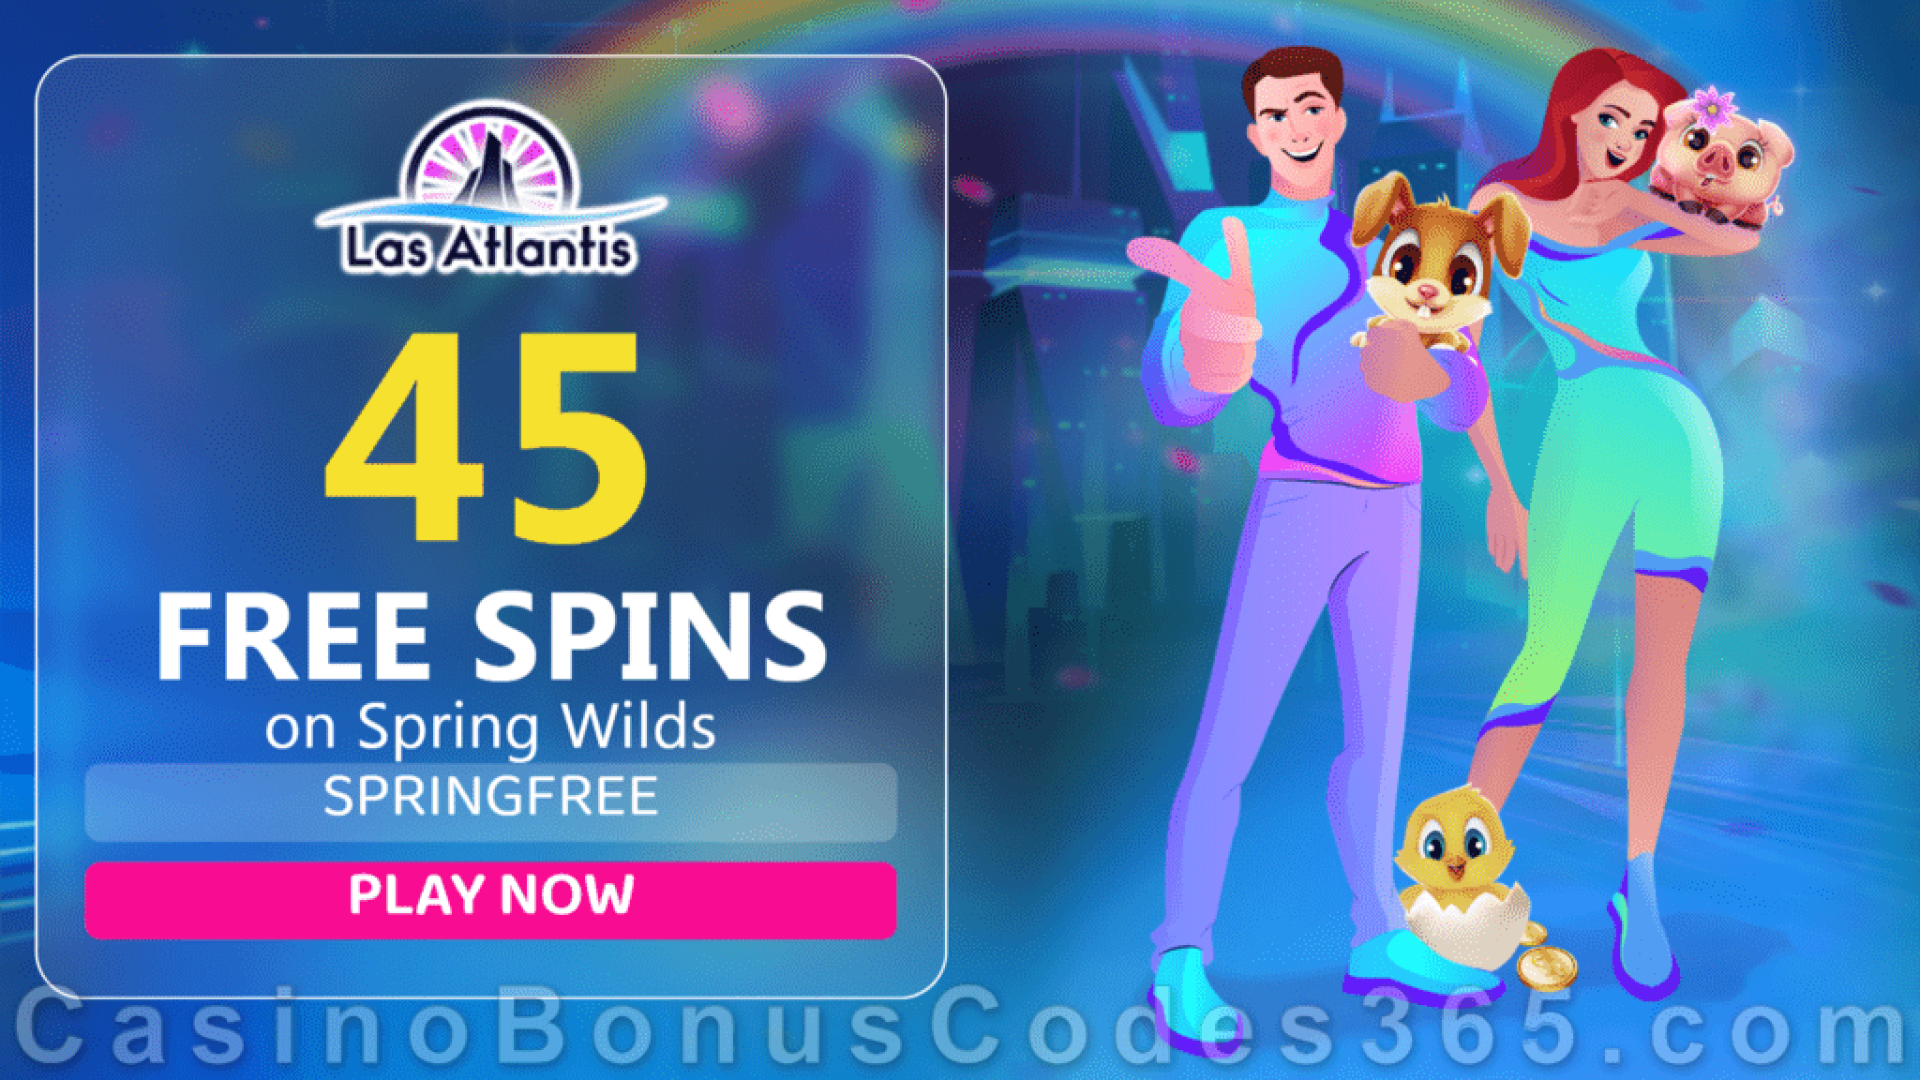 Las Atlantis Casino 45 FREE Spins on Spring Wilds New RTG Game Special Deal